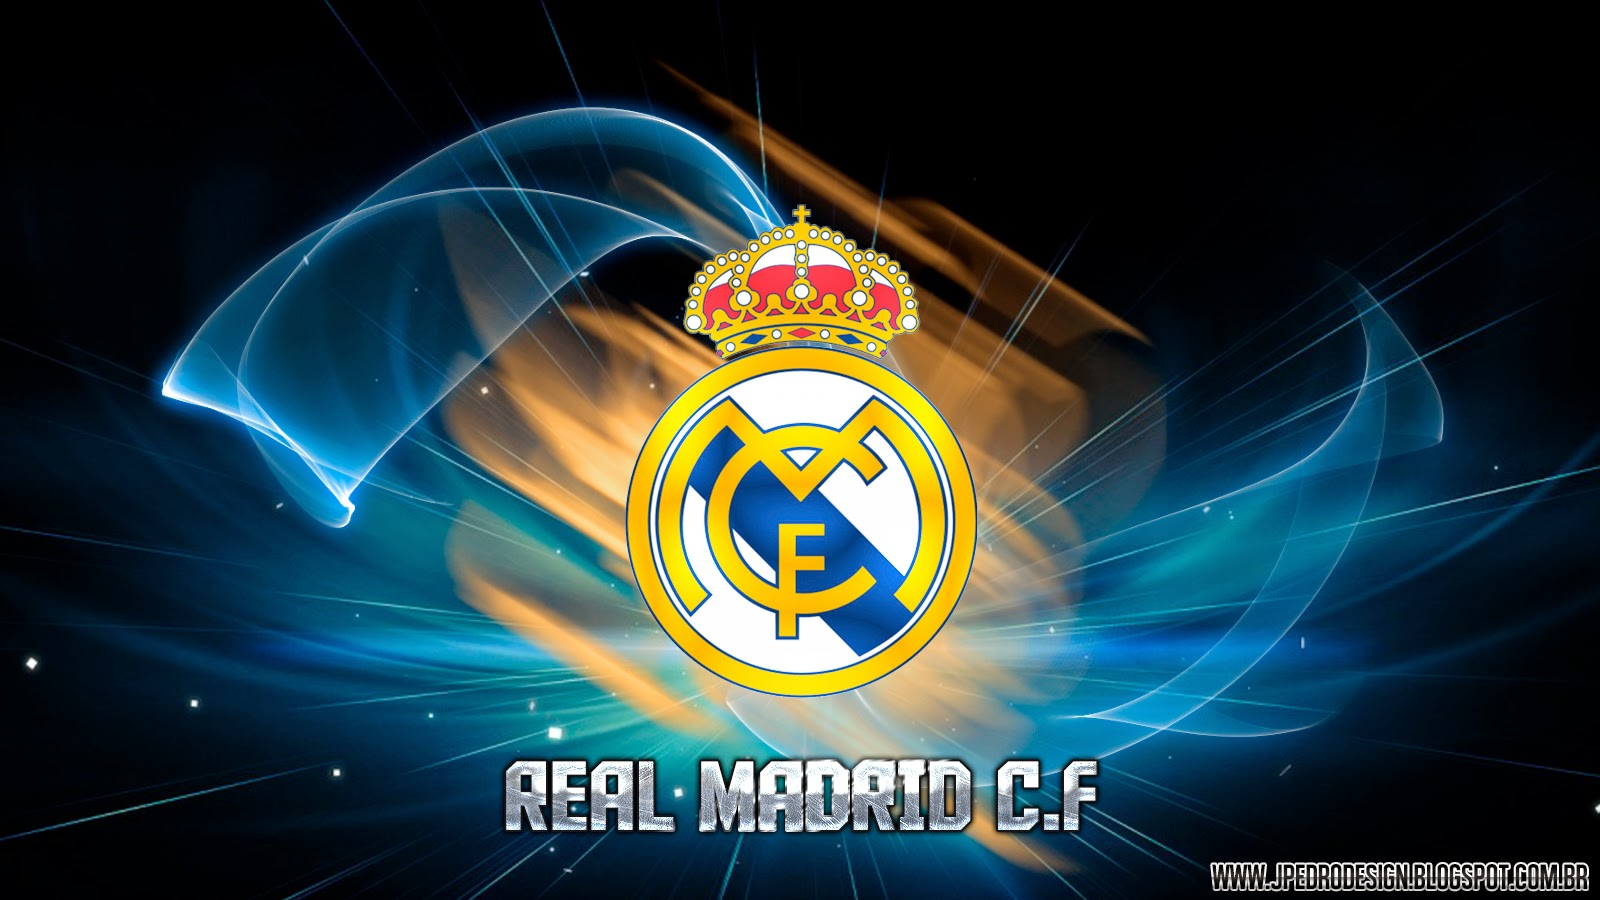 1600x900 - Real Madrid C.F. Wallpapers 10